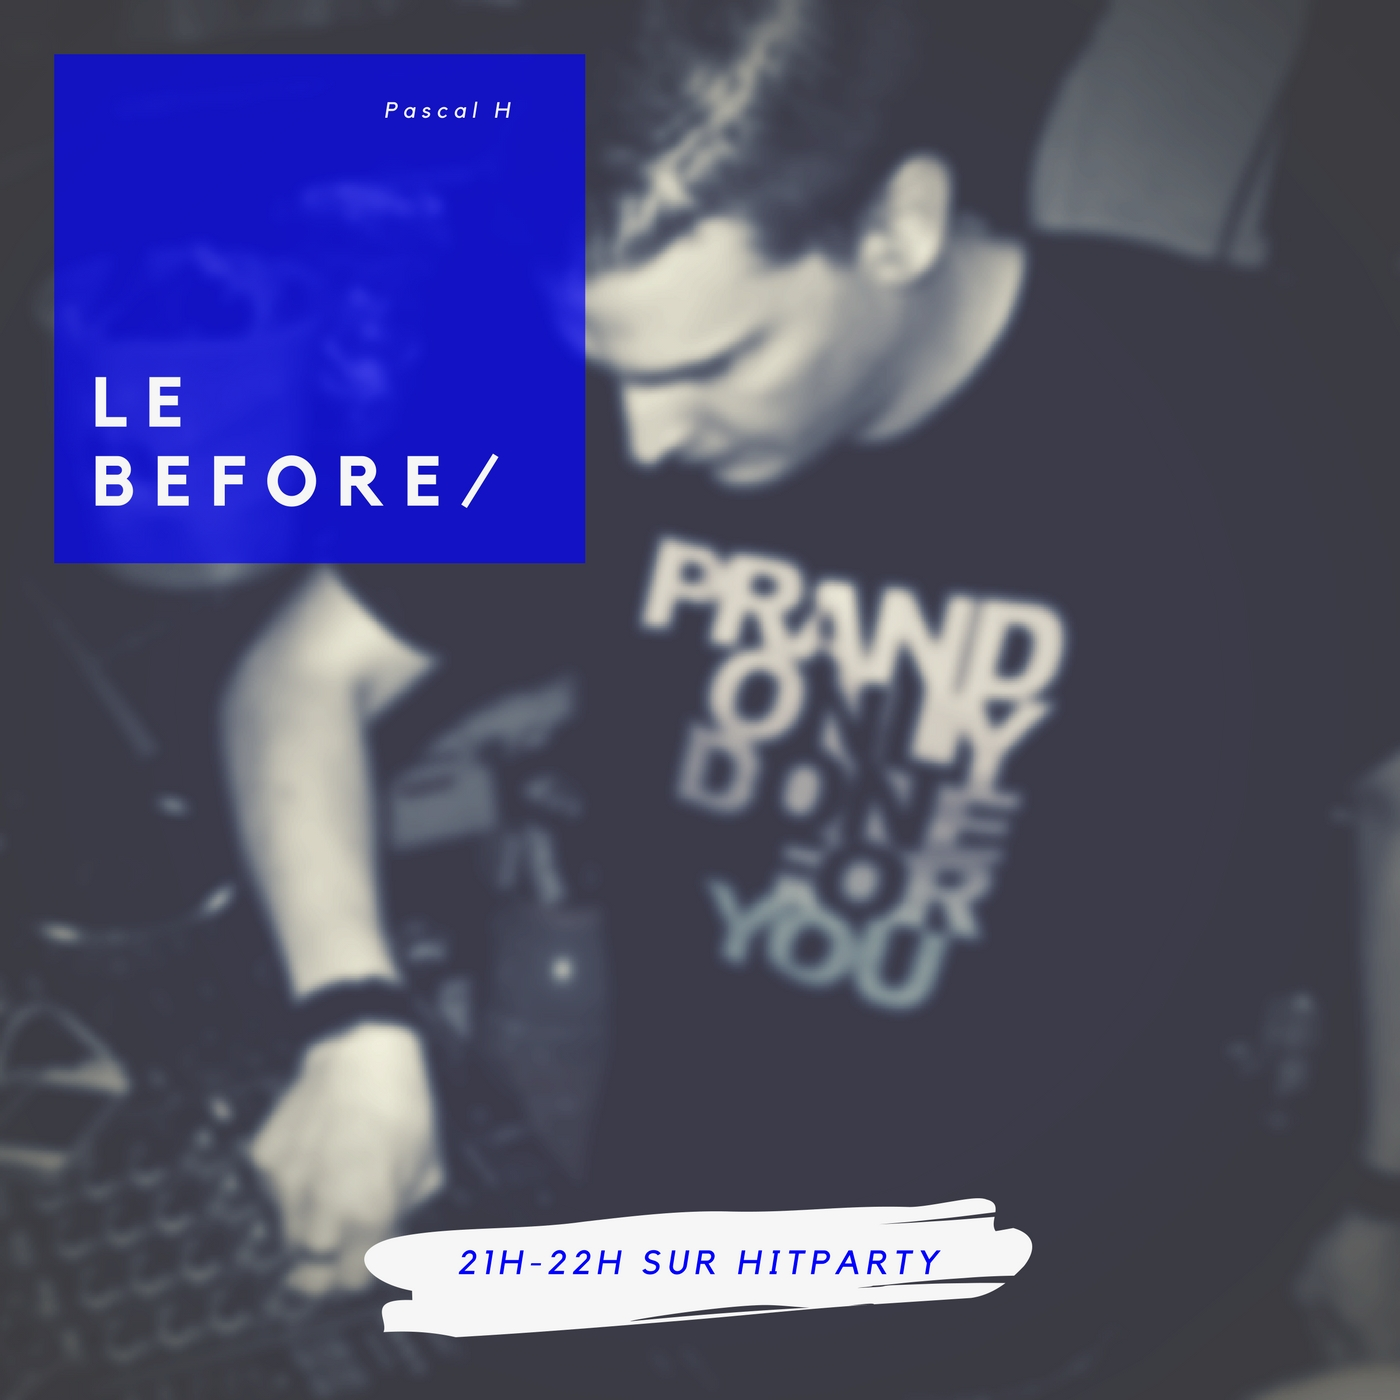 Hitparty : Le Before de Pascal H